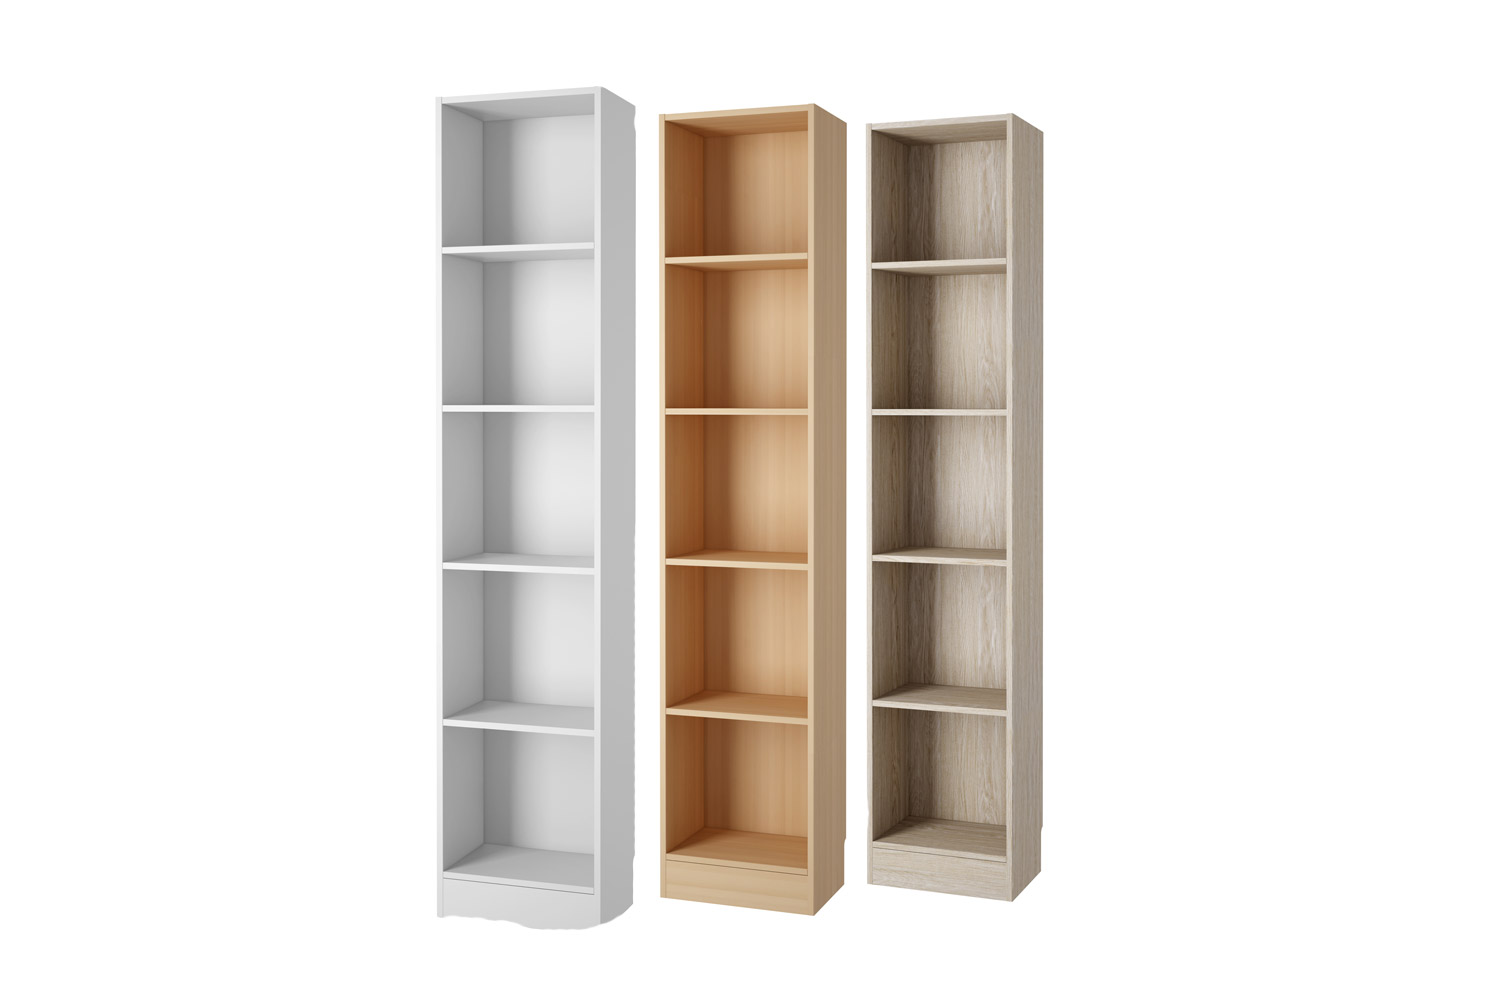 Three series of tall bookcase in different schemes